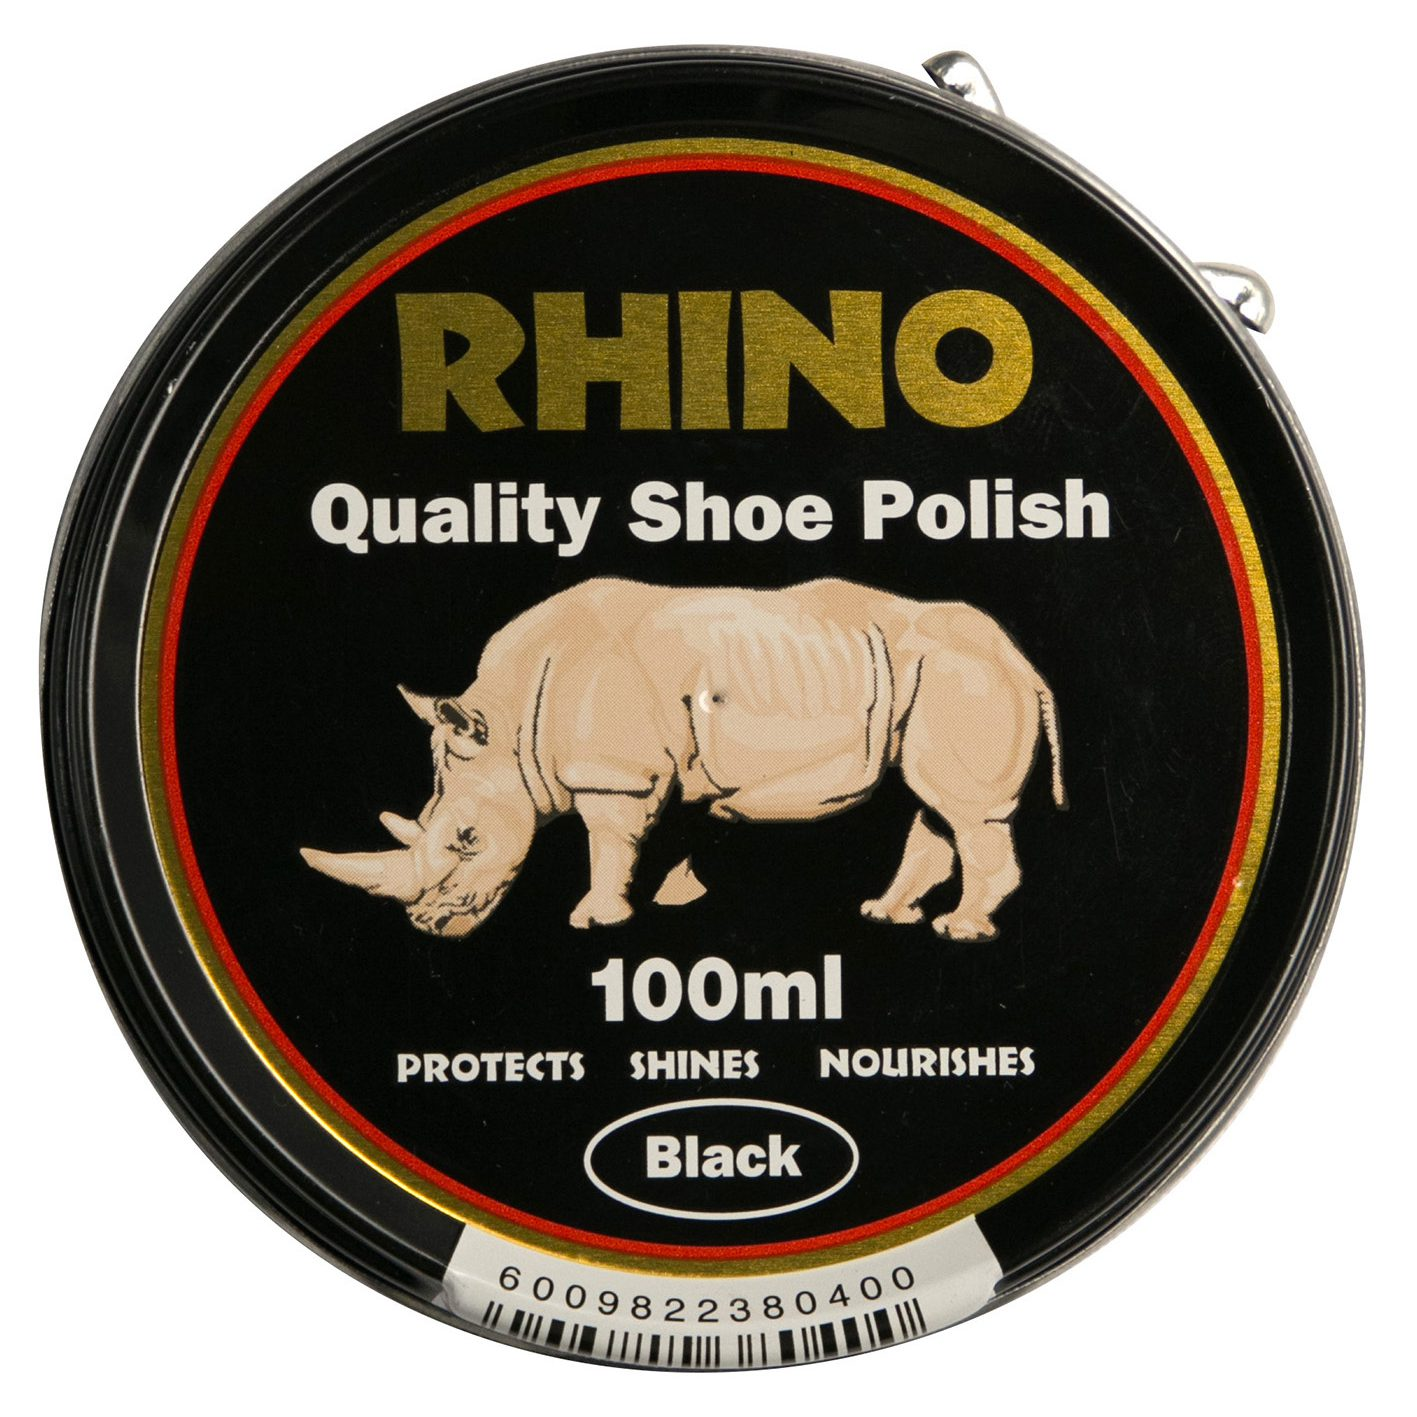 Rhino Shoe Polish Black 100ml